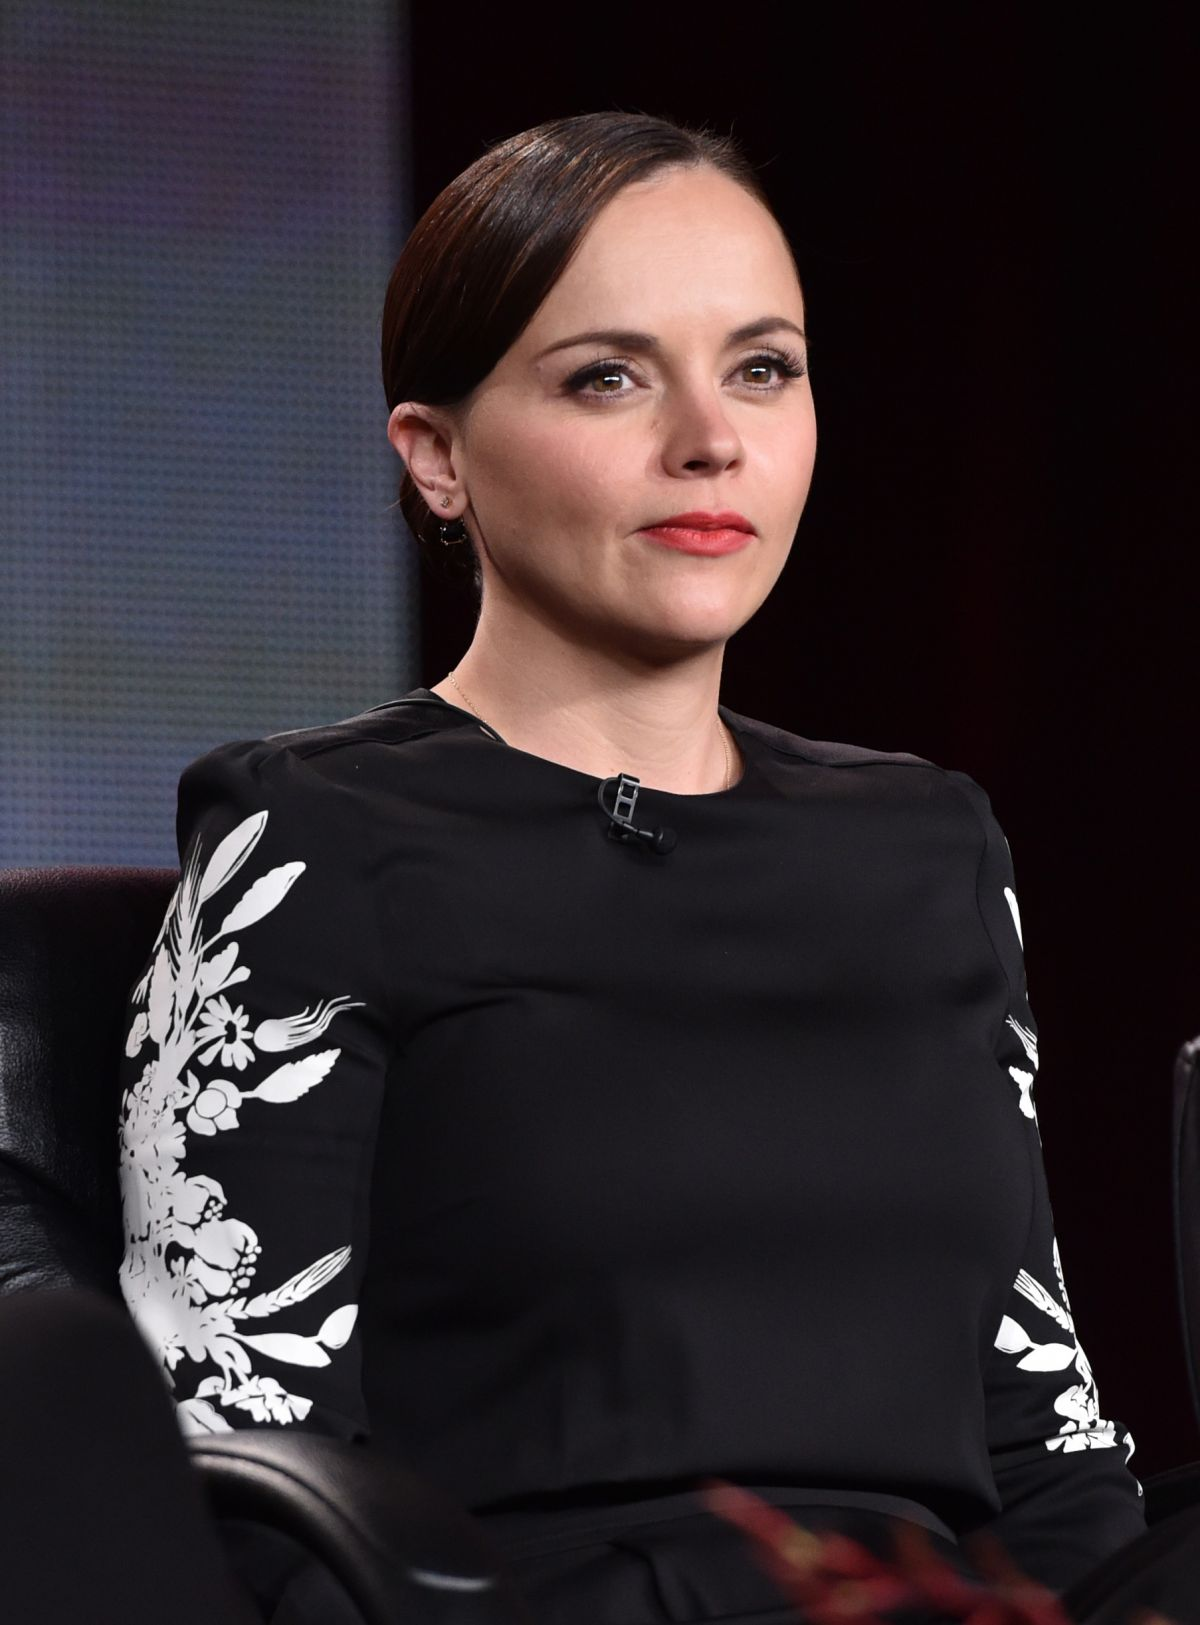 CHRISTINA RICCI The Lizie Borden Chronicles Panel TCA Press Tour in ... Christina Ricci